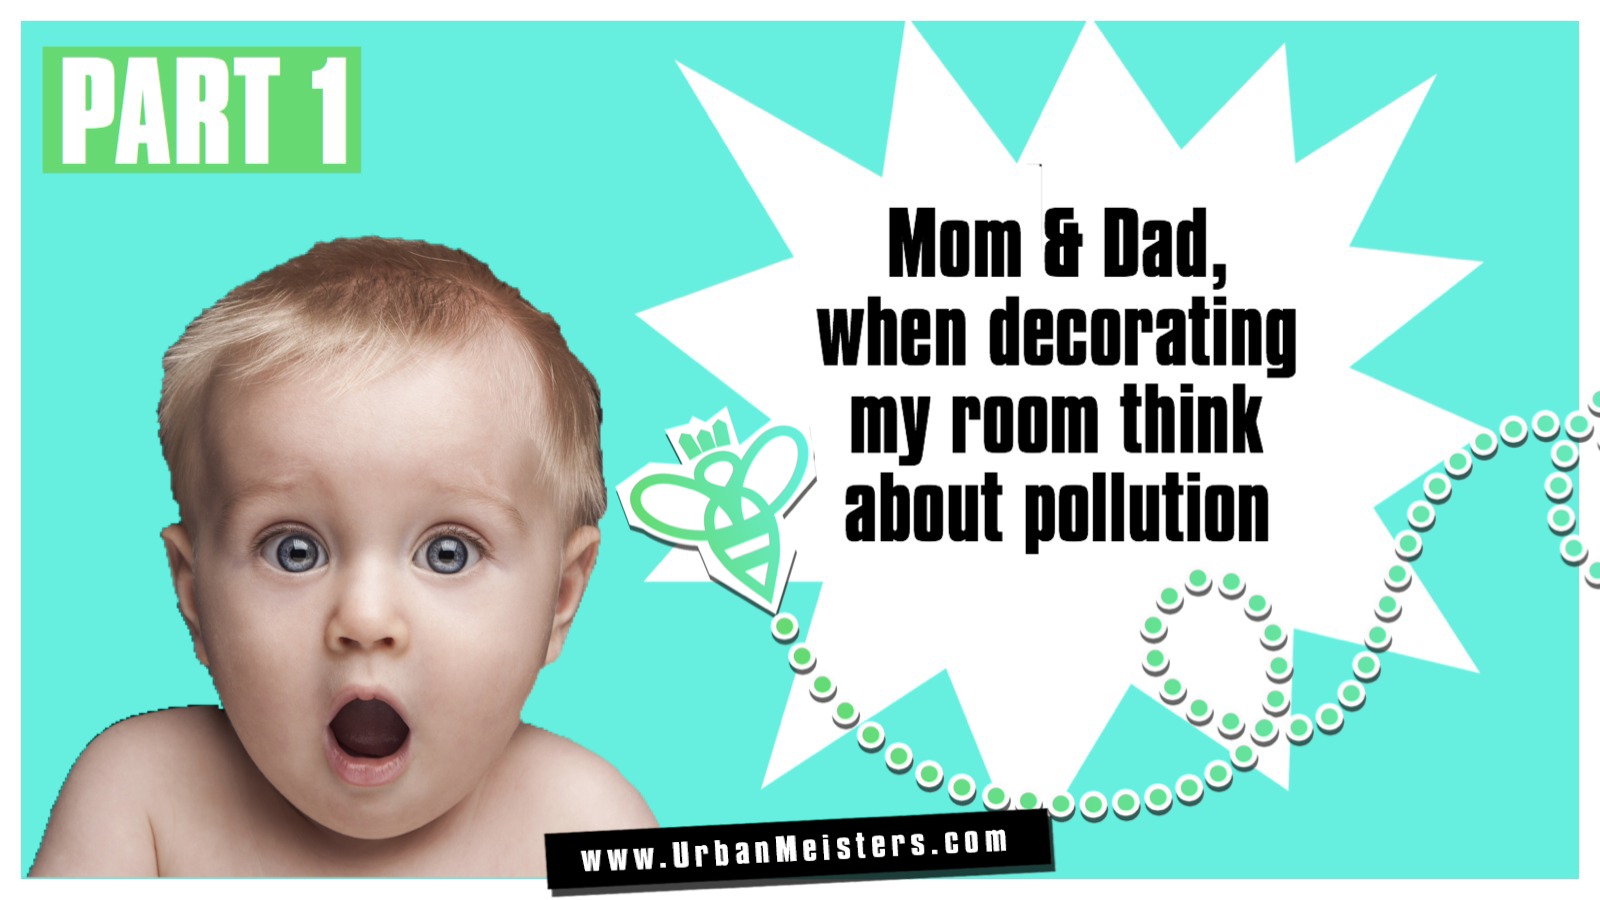 [PODCAST] How to plan pollution free decor for child's room?